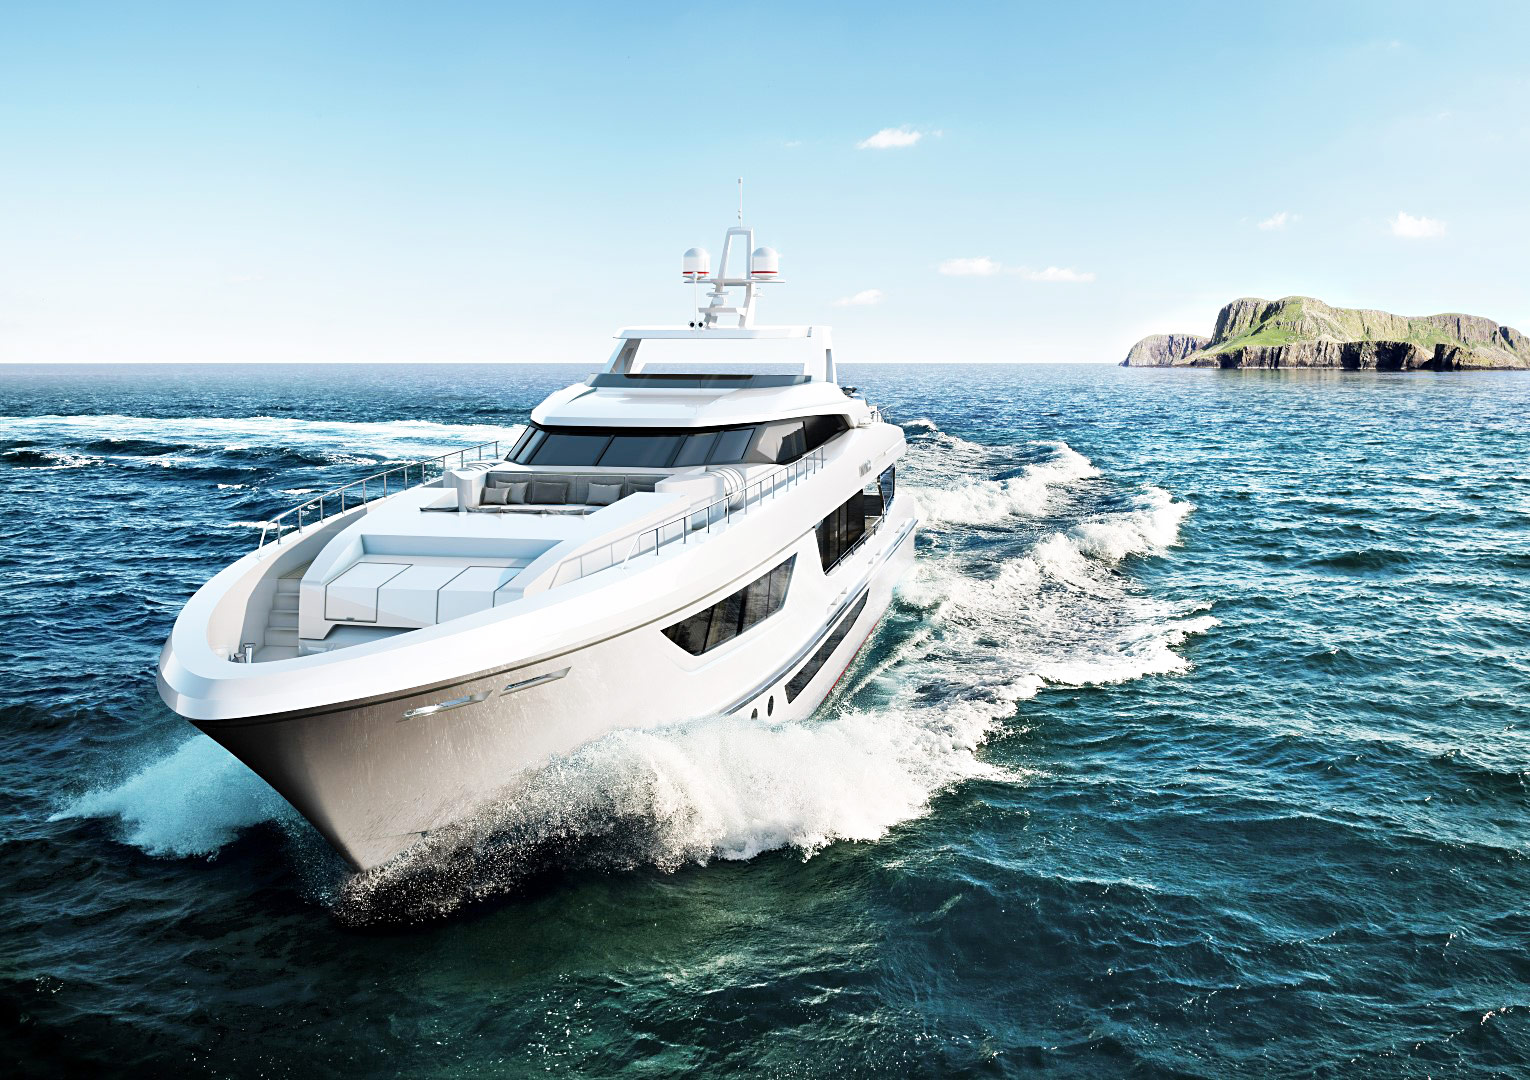 Interview With Mark Cavendish, Commercial Director Of Heesen Yachts